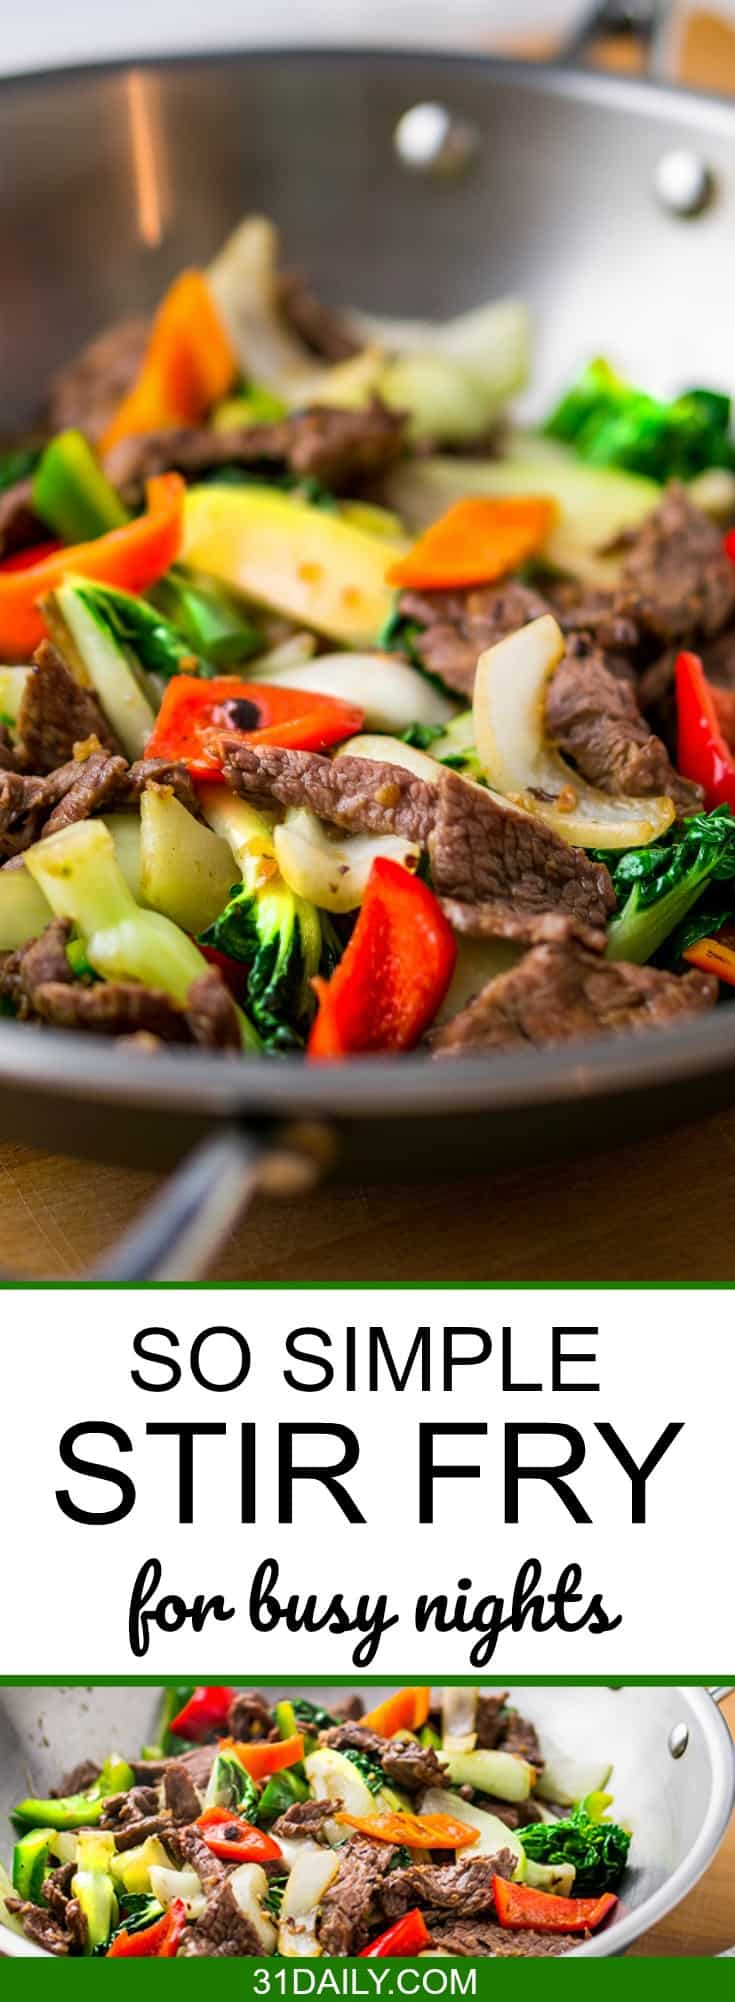 So Simple Stir Fry | 31Daily.com